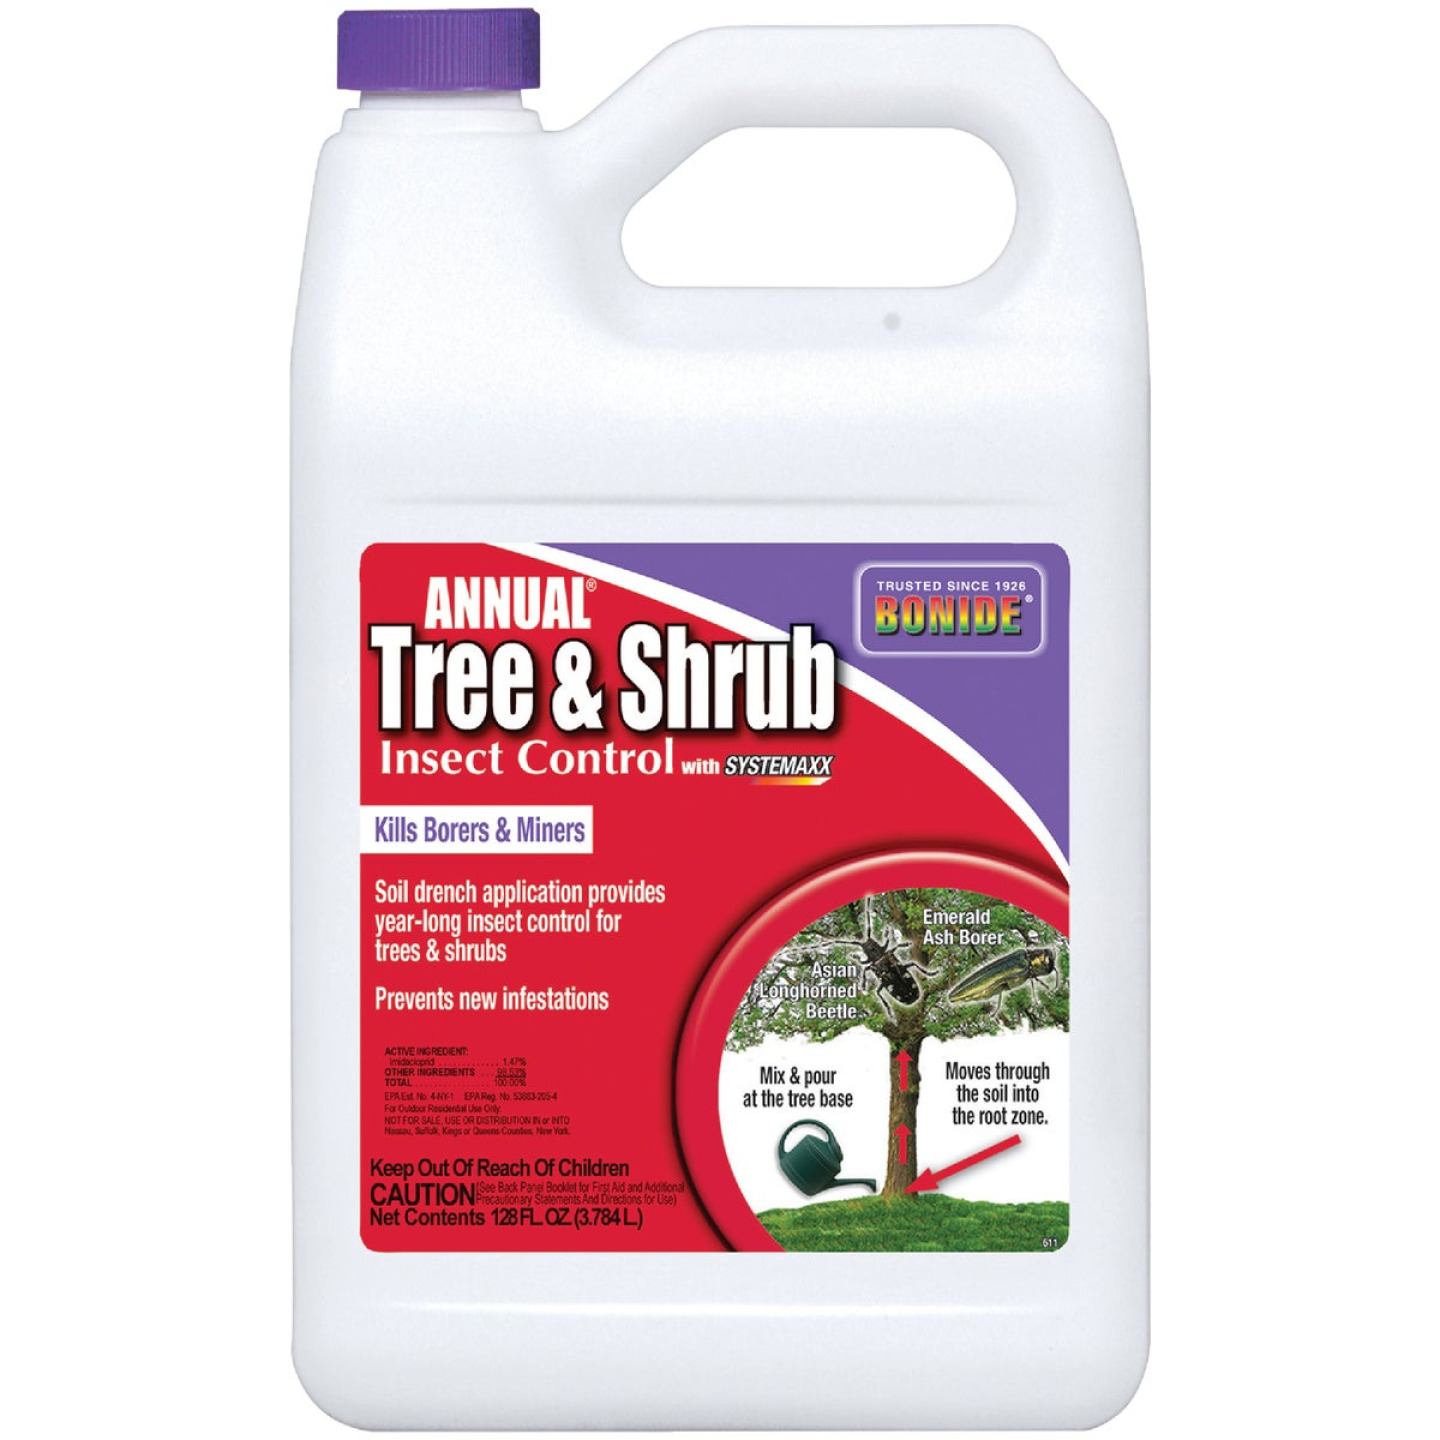 Bonide 1 Gal. Concentrate Tree & Shrub Insect Killer Image 1